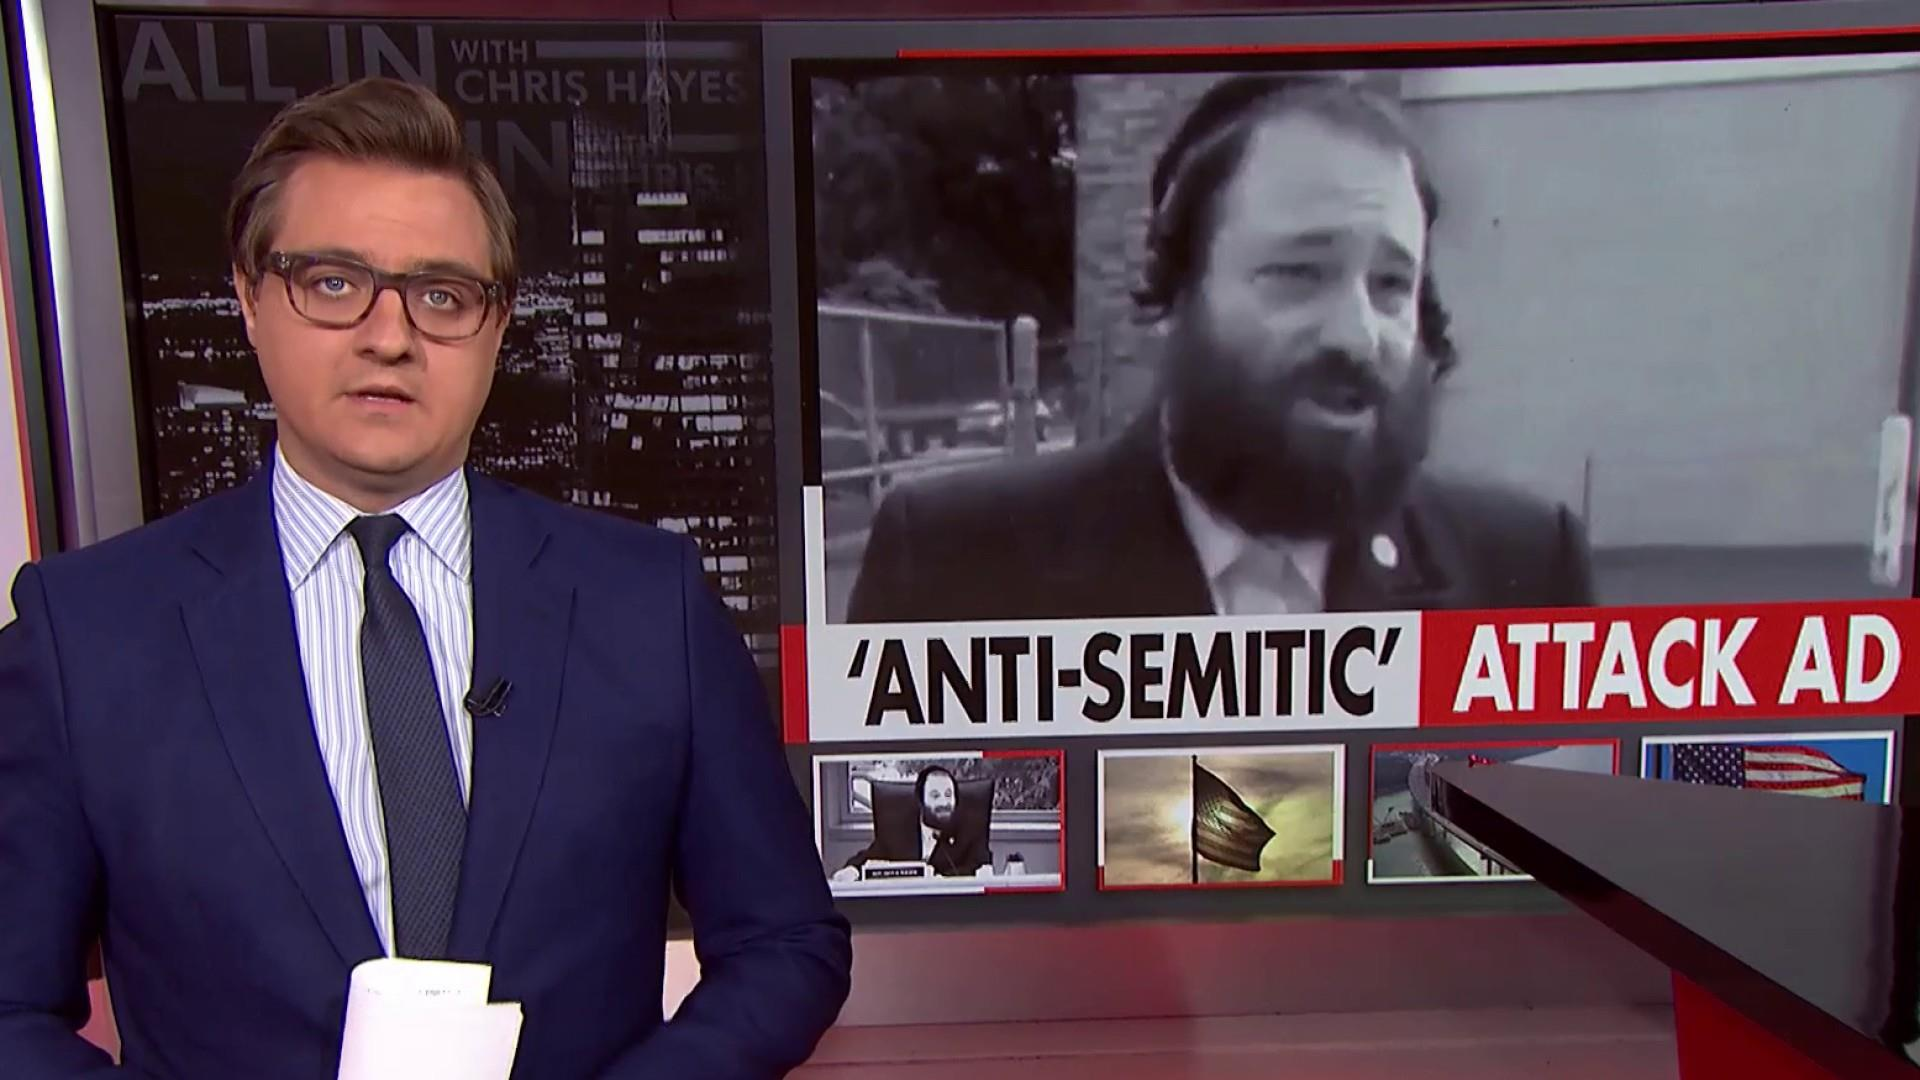 Chris Hayes examines the ubiquity of anti-semitism in America